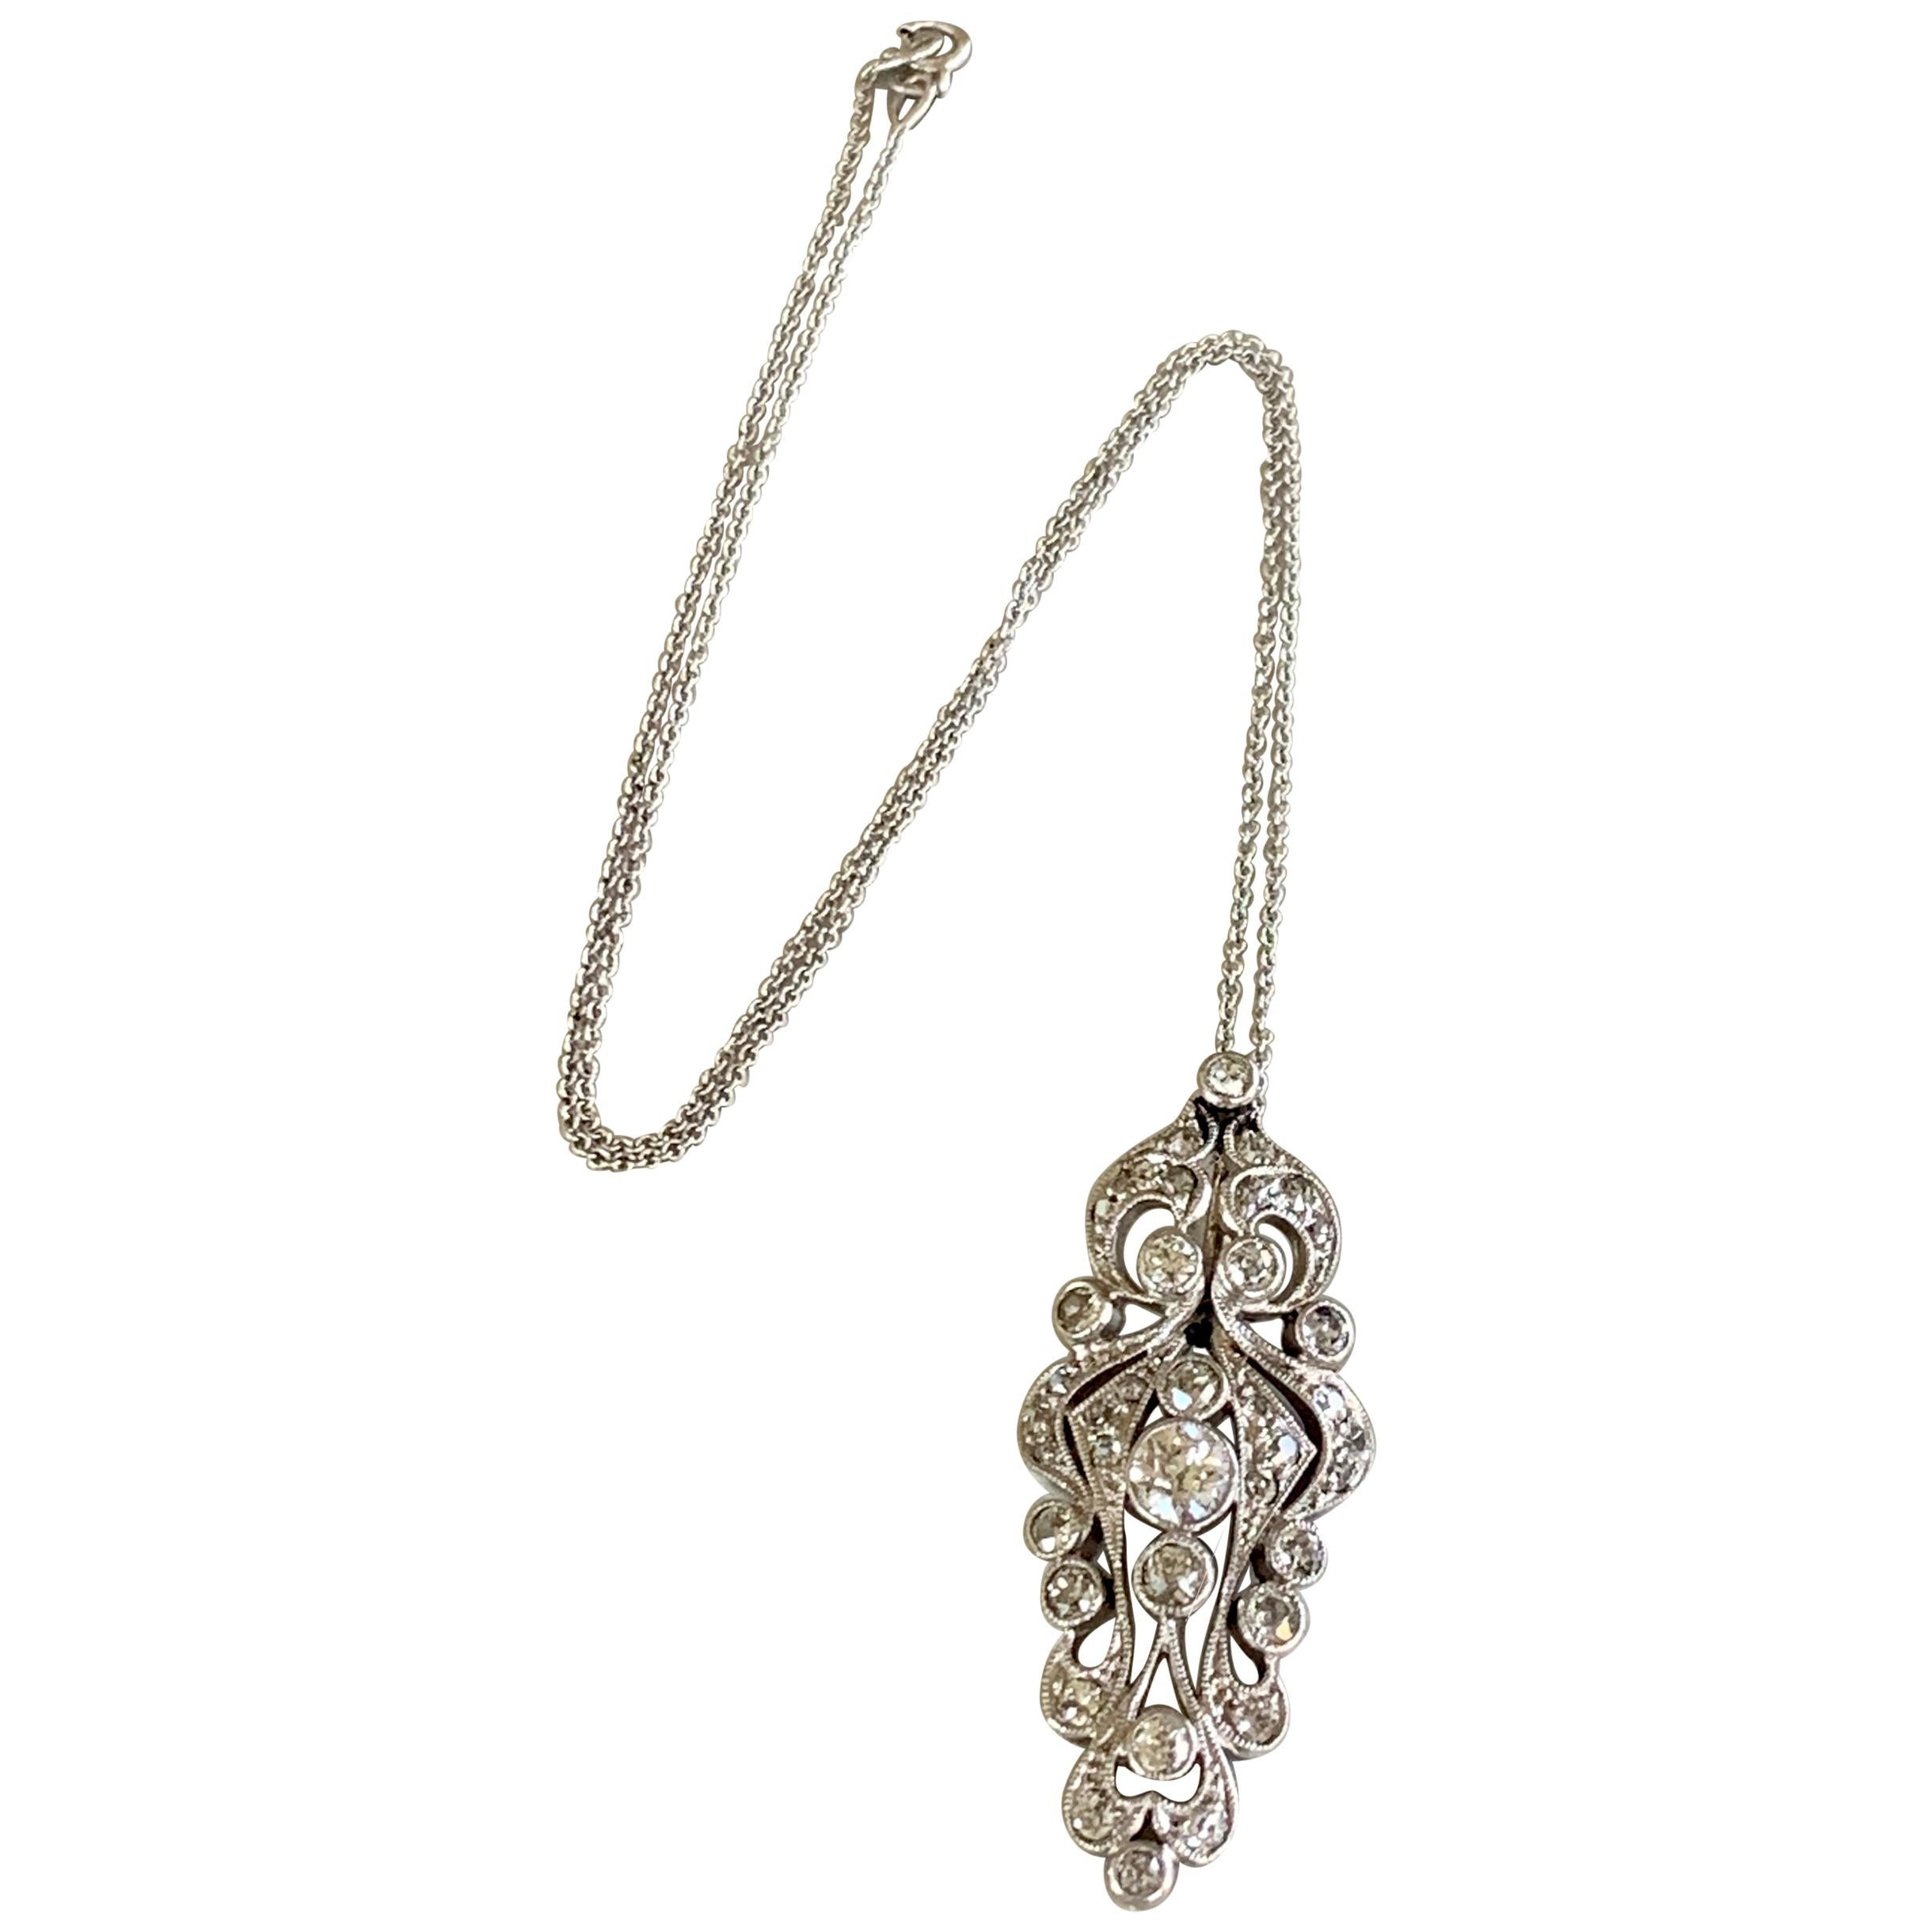 Antique Euro Cut Diamond Platinum Pendant and 14 Karat White Gold Chain